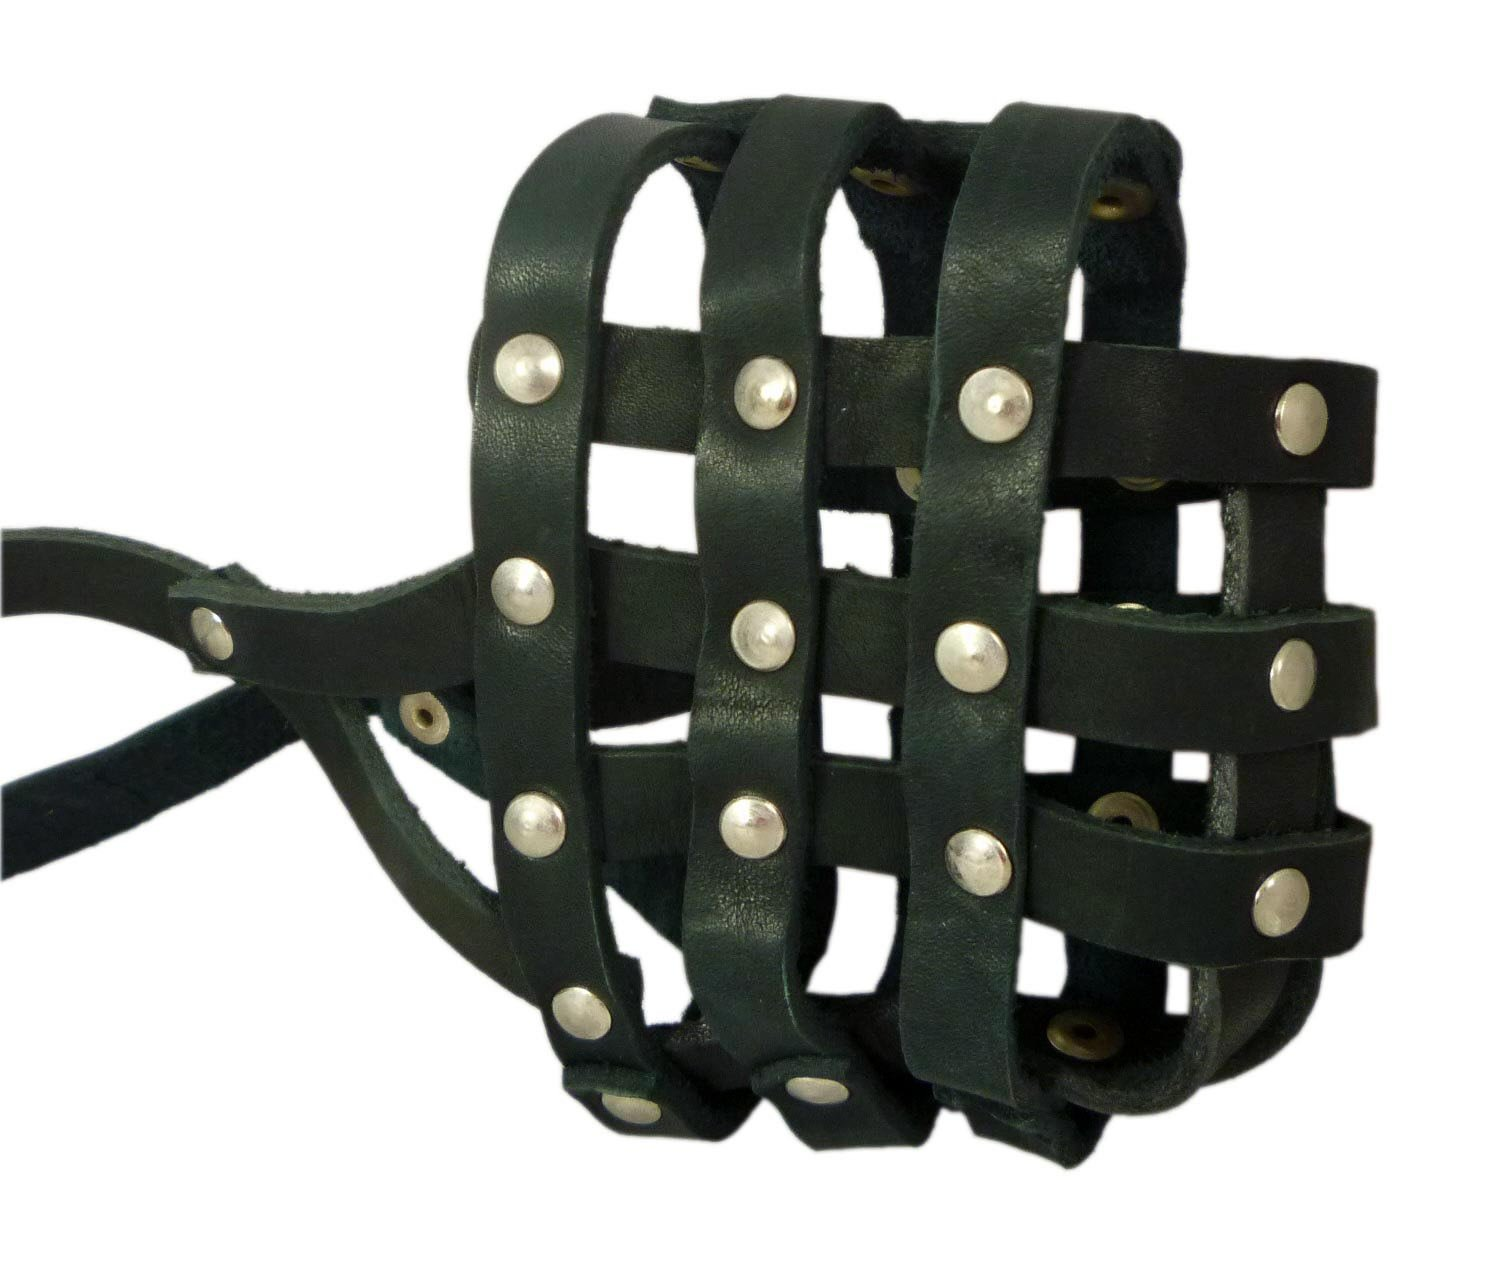 Real Leather Dog Basket Muzzle #107 Black - Pit Bull, AmStaff (Circumference 12'', Snout Length 3.5'')